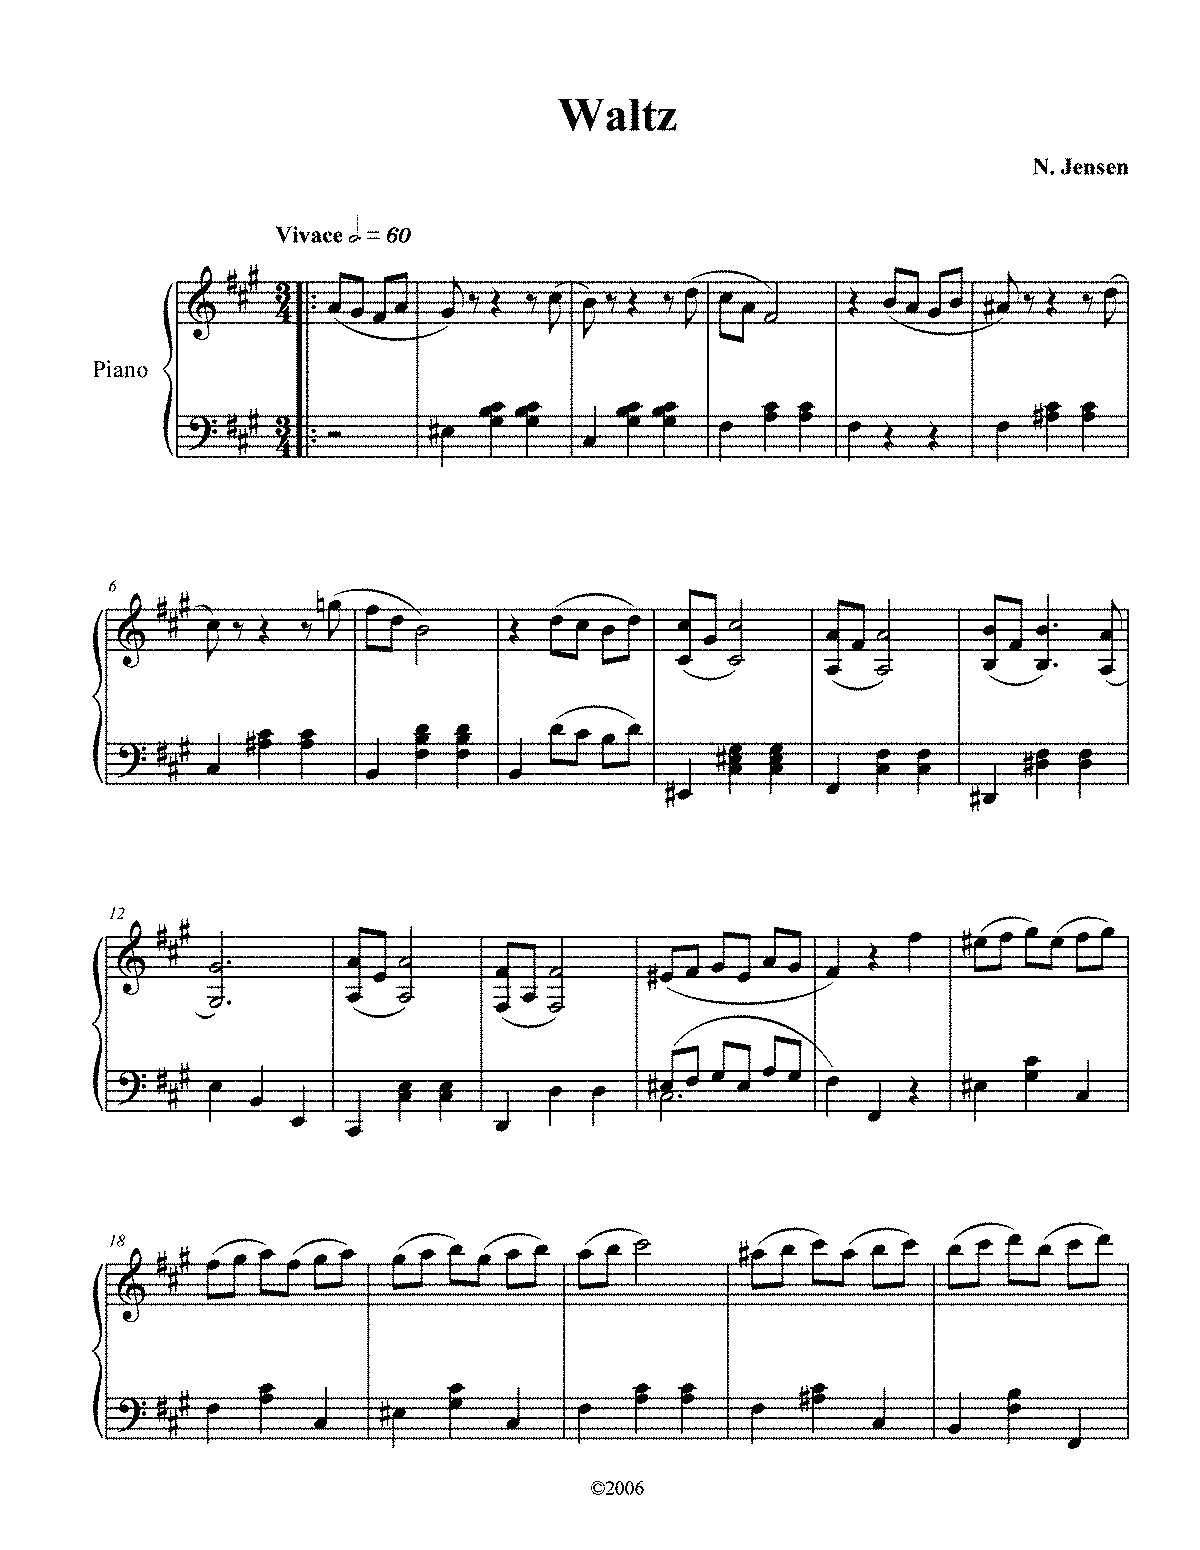 PMLP222686-Waltz in F- minor.pdf